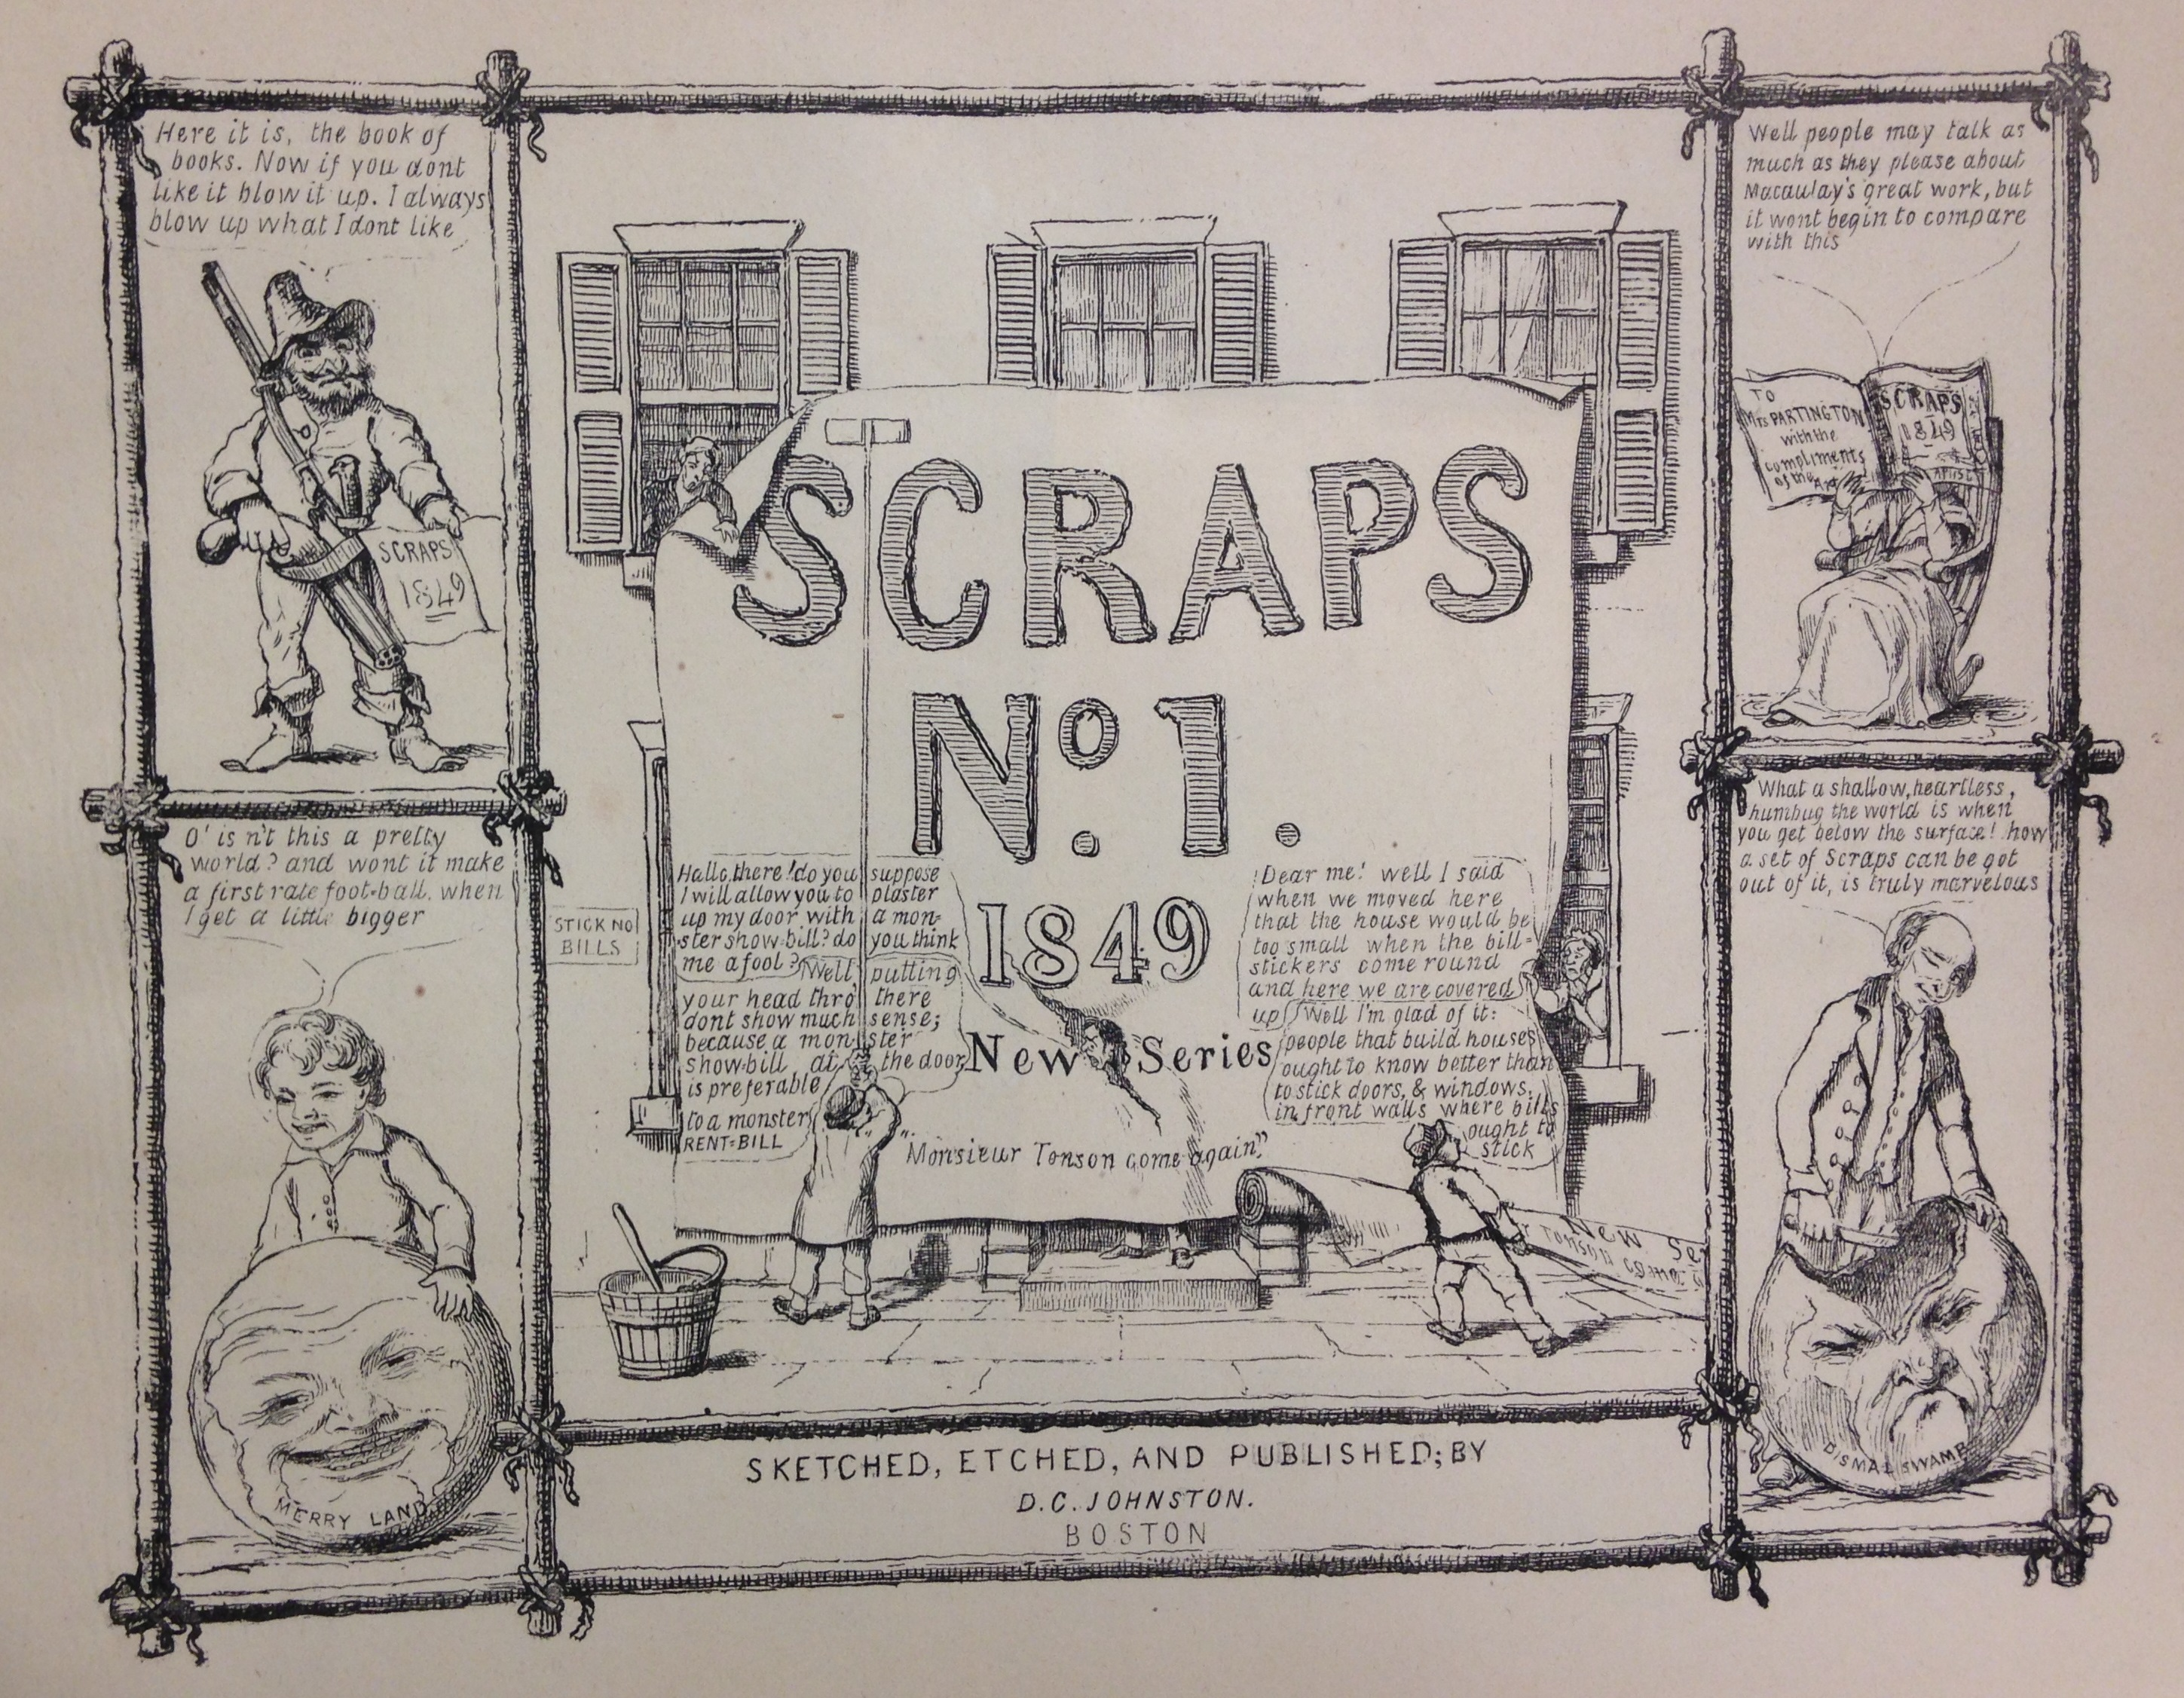 Front cover of David Claypoole Johnston, Scraps no. 1, new series (Boston, 1849).    (E166 .J65 1849)